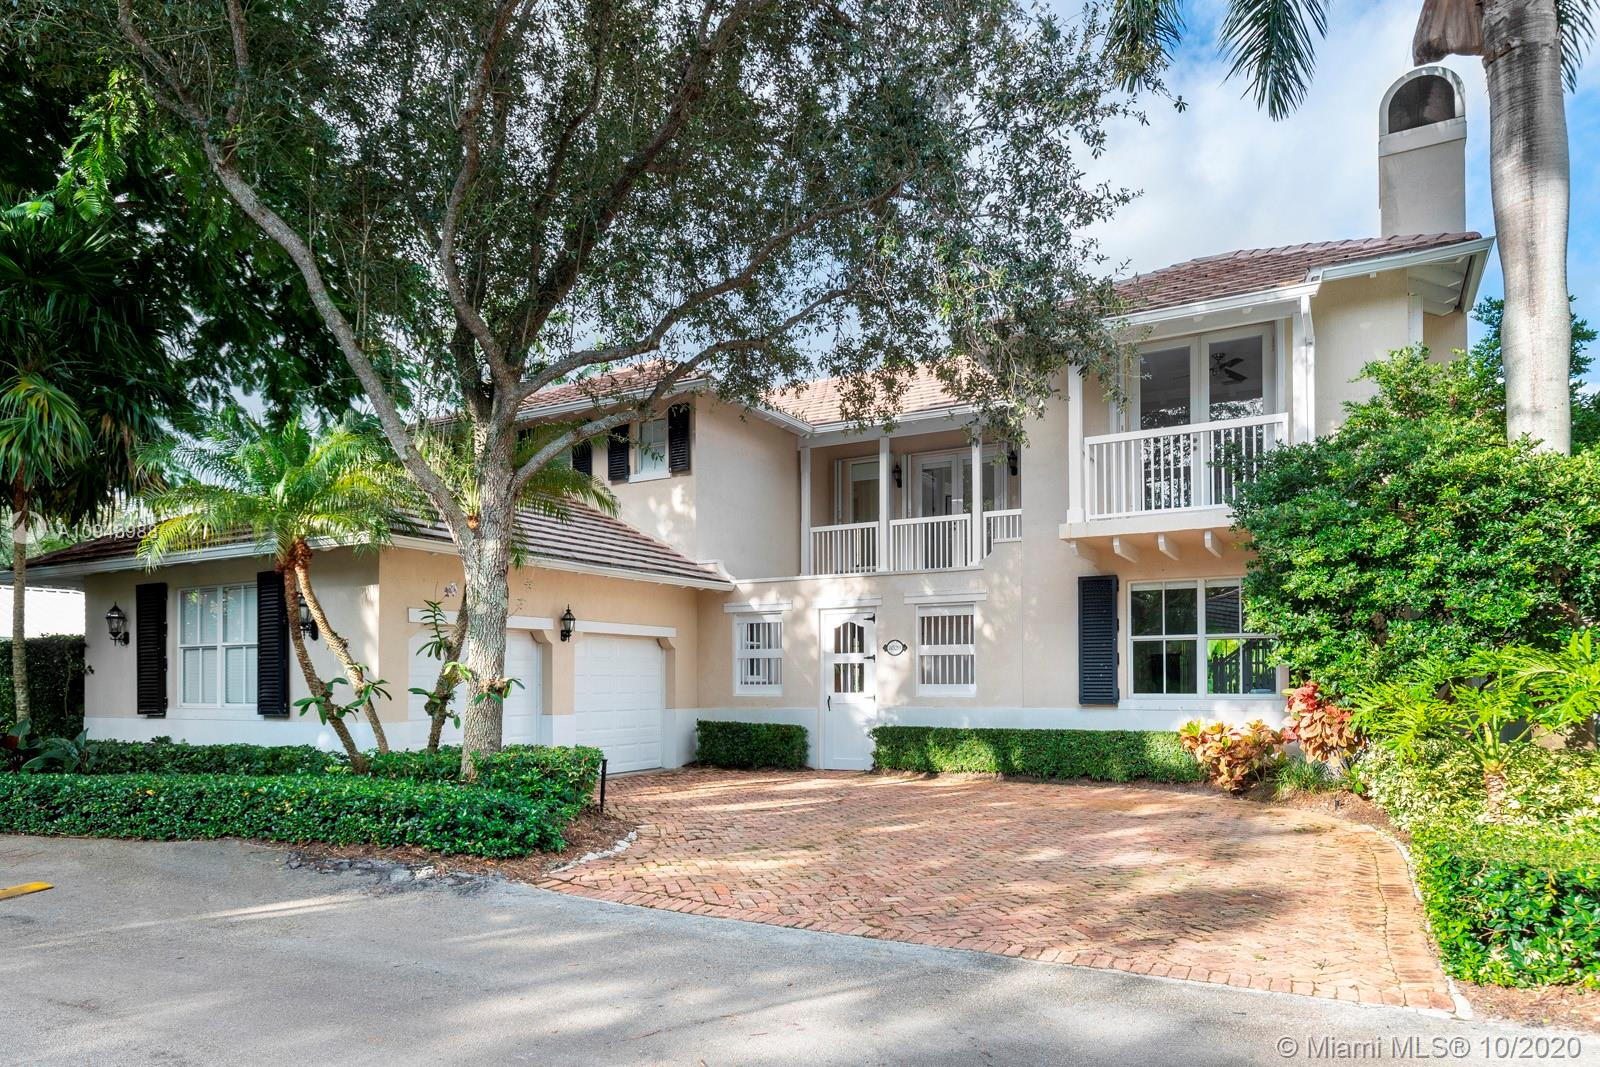 Fall in love with this perfectly located home in the community of Parkside Village - small gated neighborhood in the the heart of South Miami. This village is unique, quiet, lushly landscaped and offers tranquility and privacy while still being within walking distance of Miami's best schools, the shops at Sunset place, and next to Dante Fassell Park. 8520 SW 57th Path is just one of 20 homes in this community. A four bedroom, four full bath residence with 3,547 square feet of living area, this two story home features wood floors in every bedroom, a large master suite, and lovely pool and yard overlooking a park like setting. This is a great family home in South Miami in a central location.